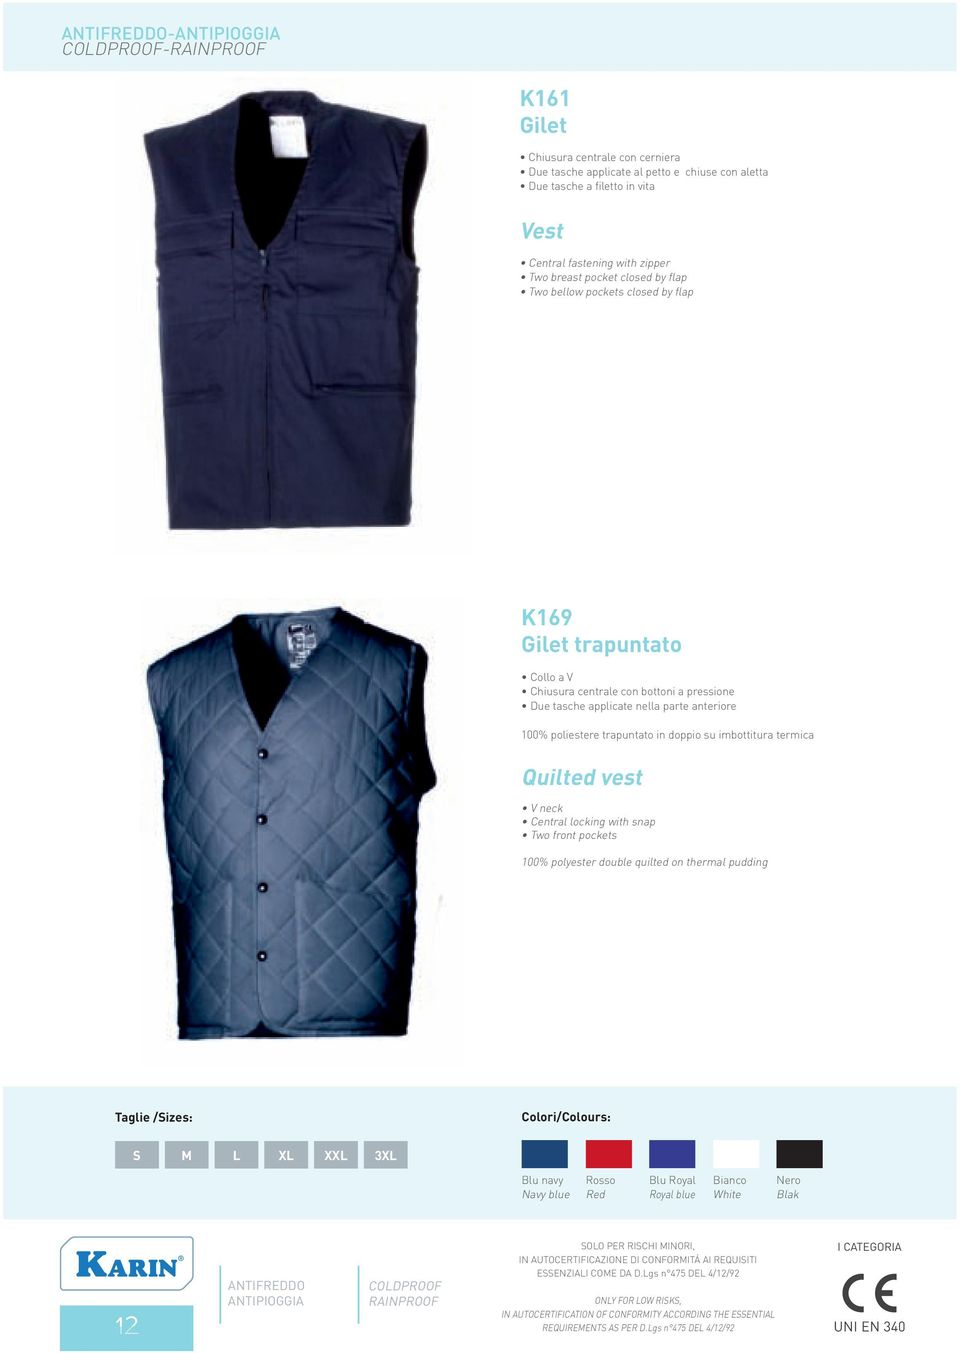 termica Quilted vest V neck Central locking with snap Two front pockets 100% polyester double quilted on thermal pudding Taglie /Sizes: Colori/Colours: S M L XL XXL 3XL Blu navy Navy blue Rosso Red